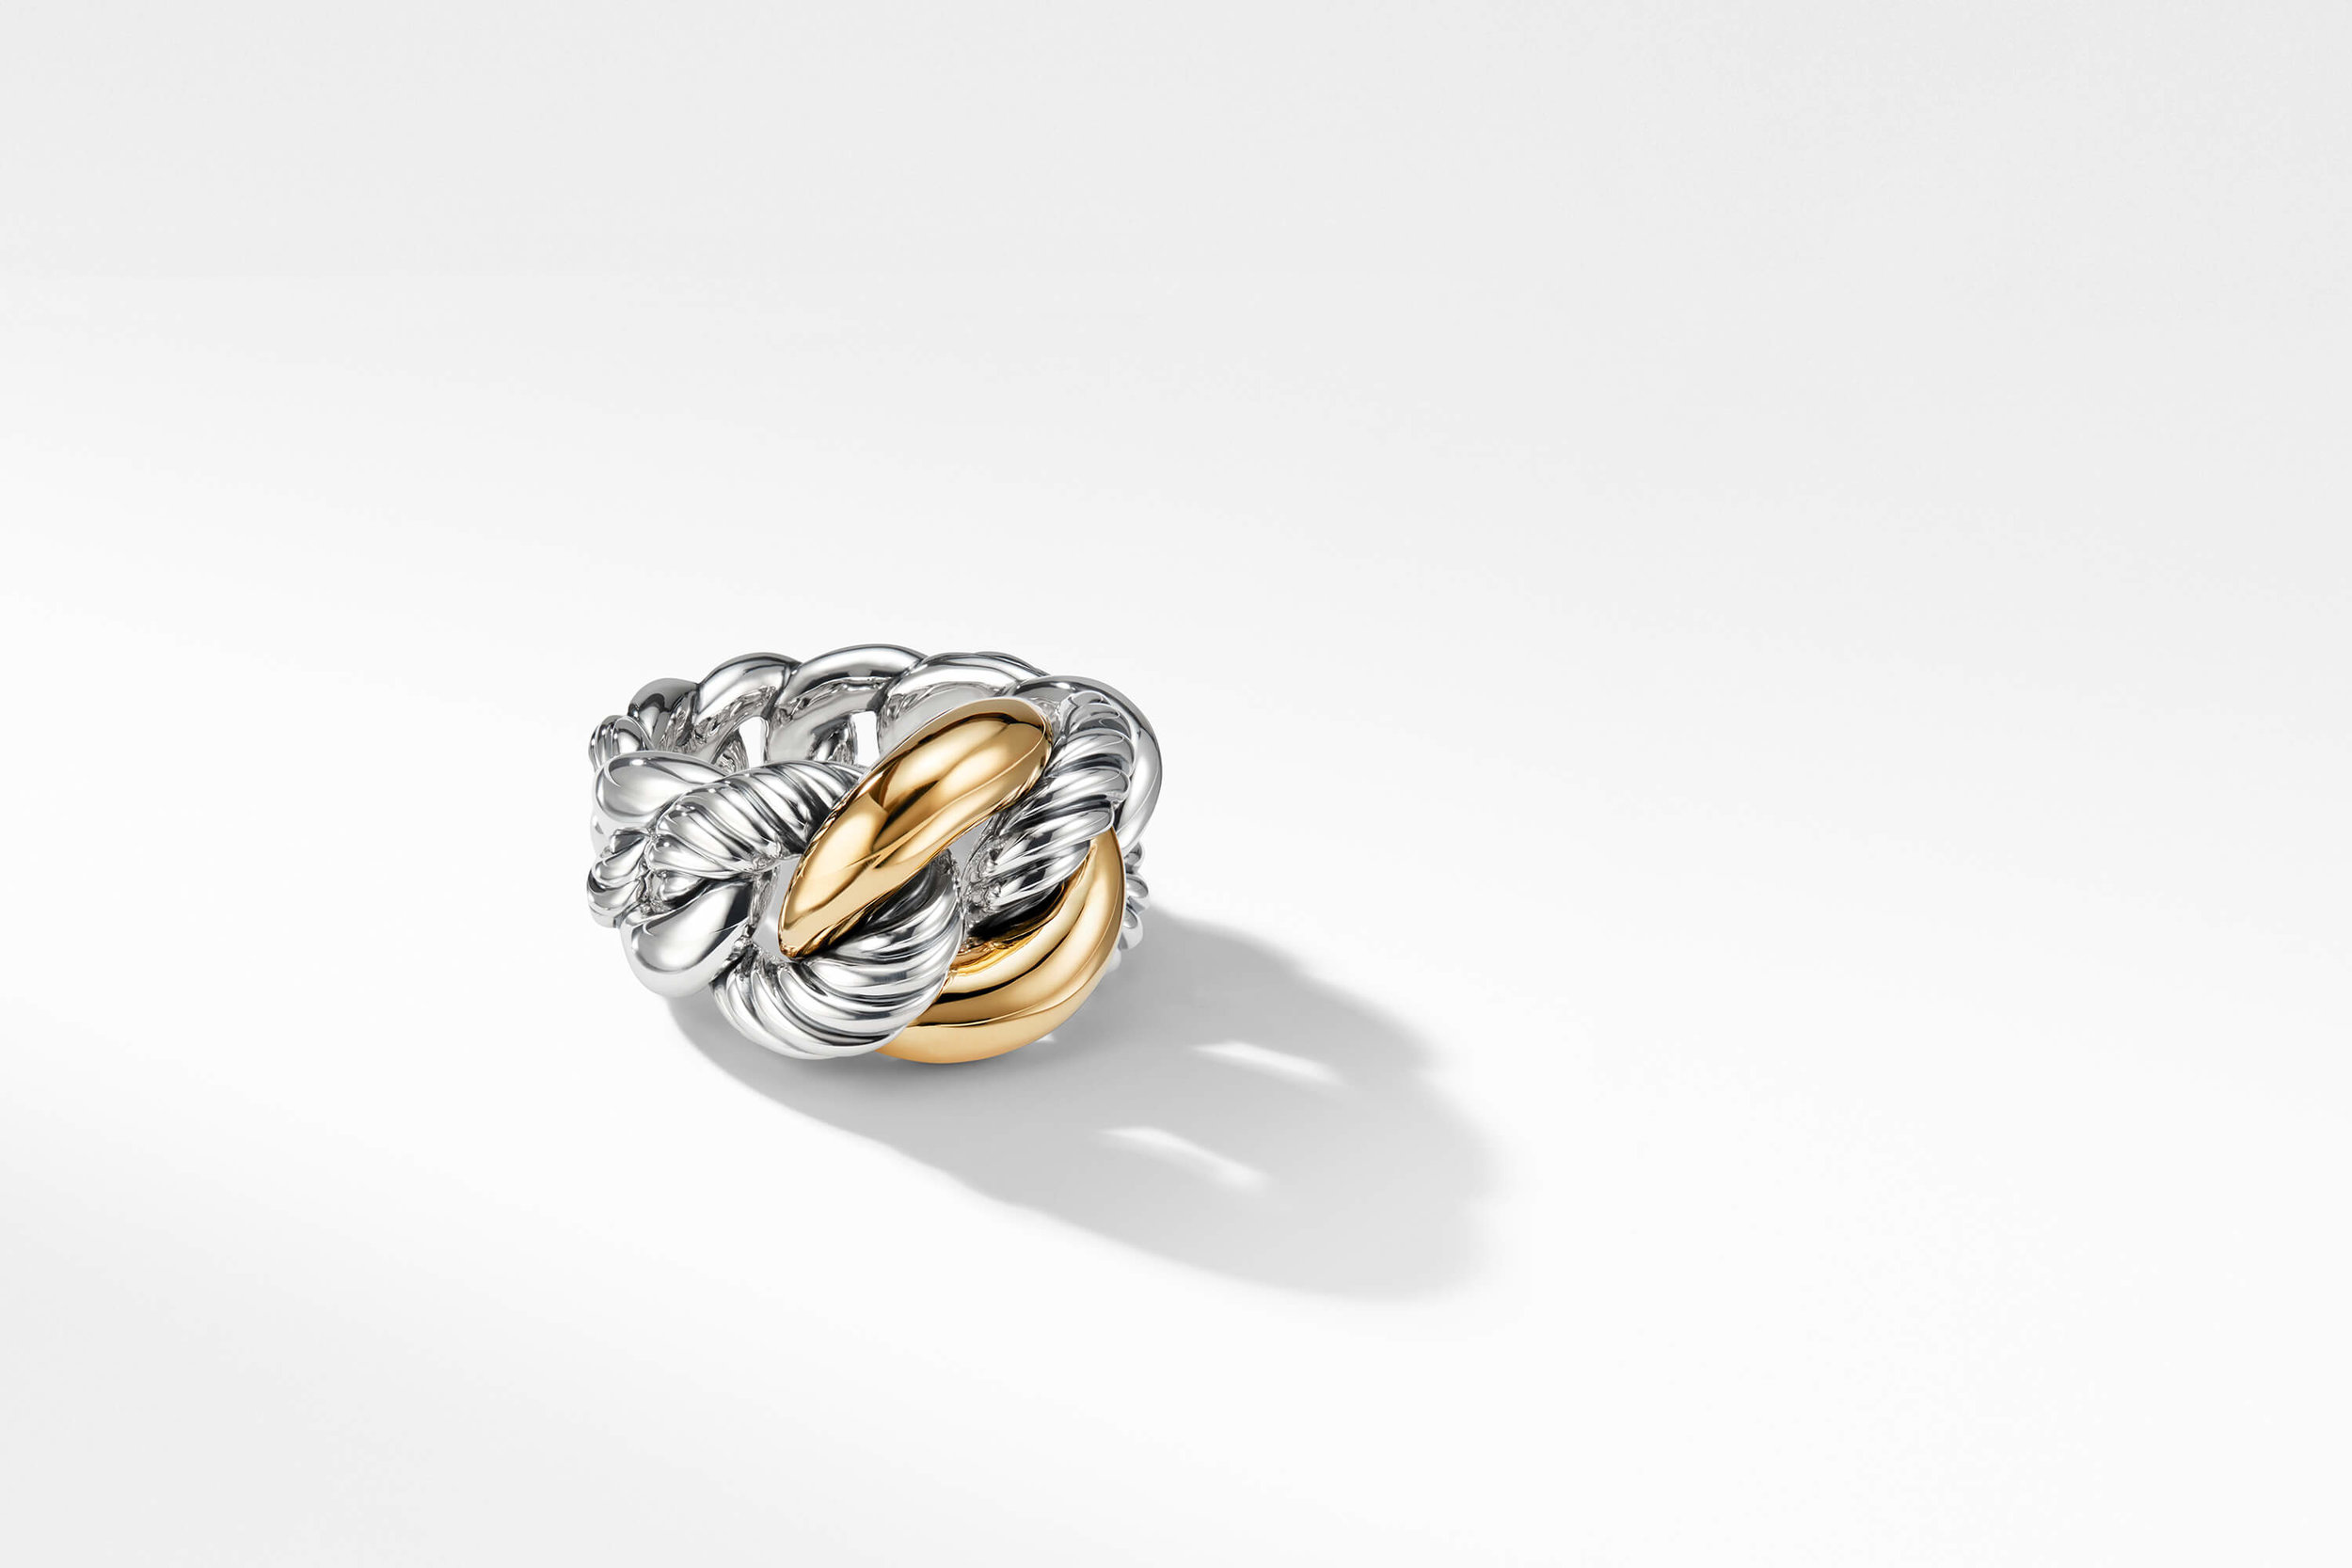 David_Yurman_ring_Commercial_photography.jpg